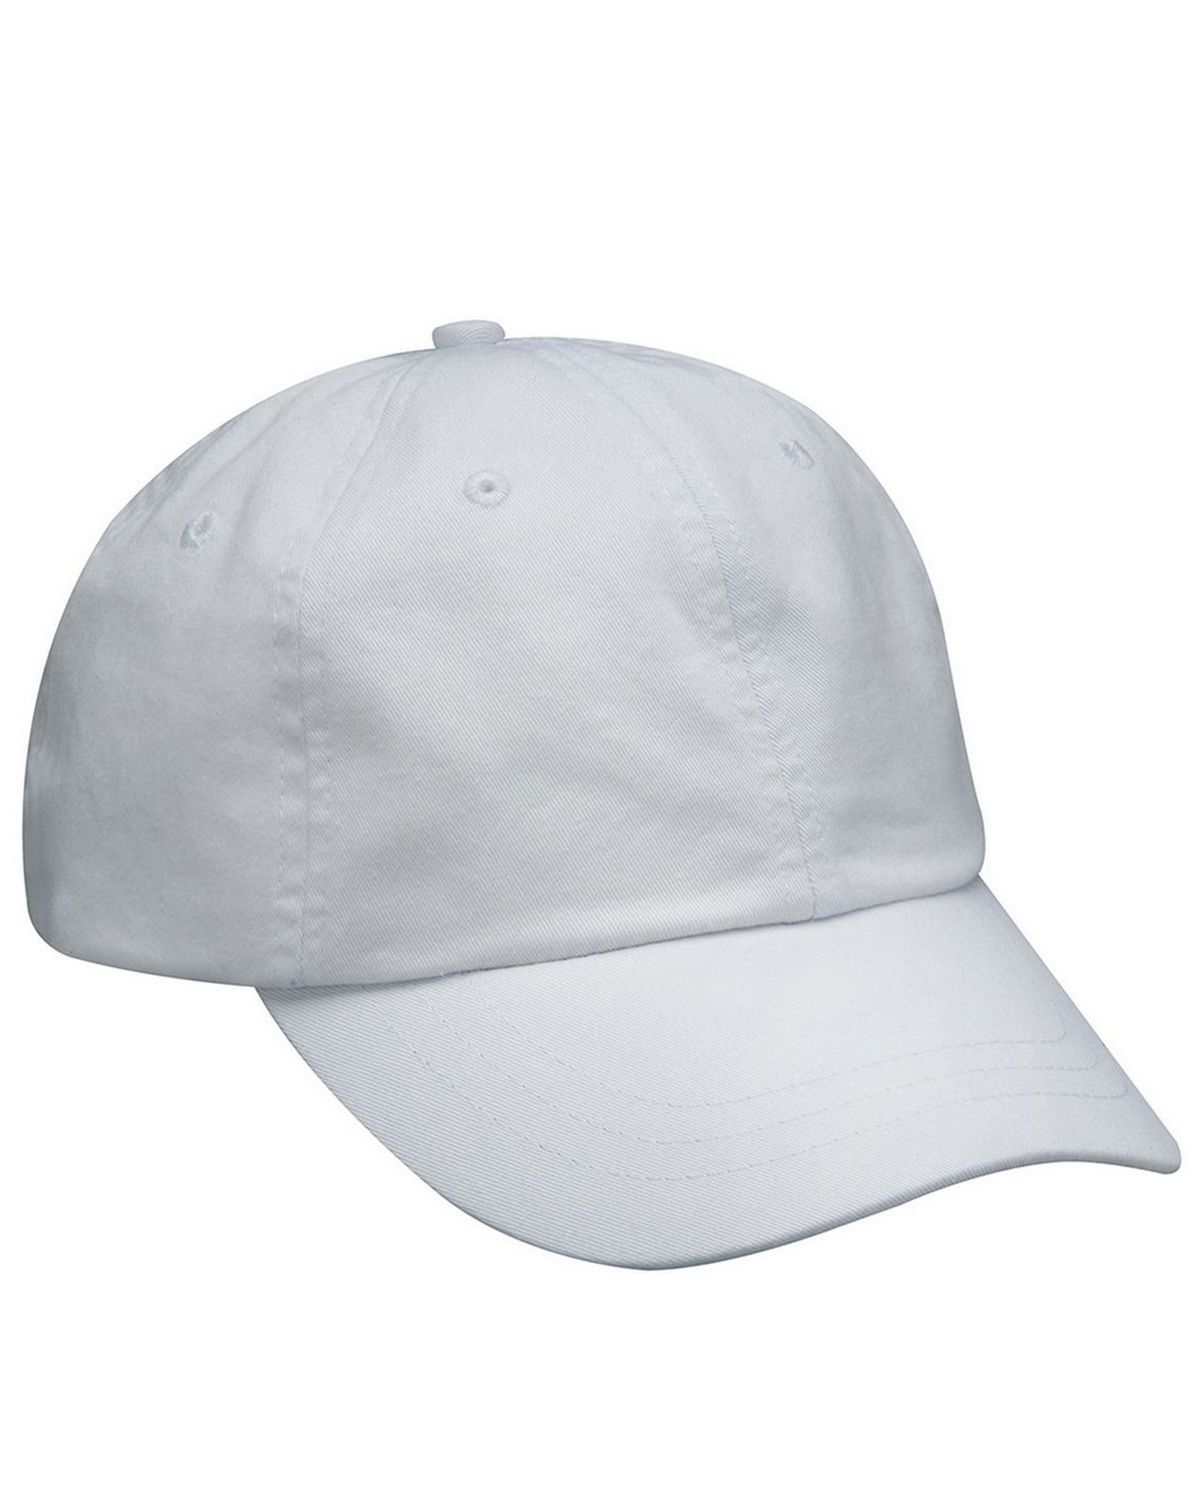 3ce565d92 Adams AD969 6 Panel Low Profile Washed Pigment Dyed Cap at ...